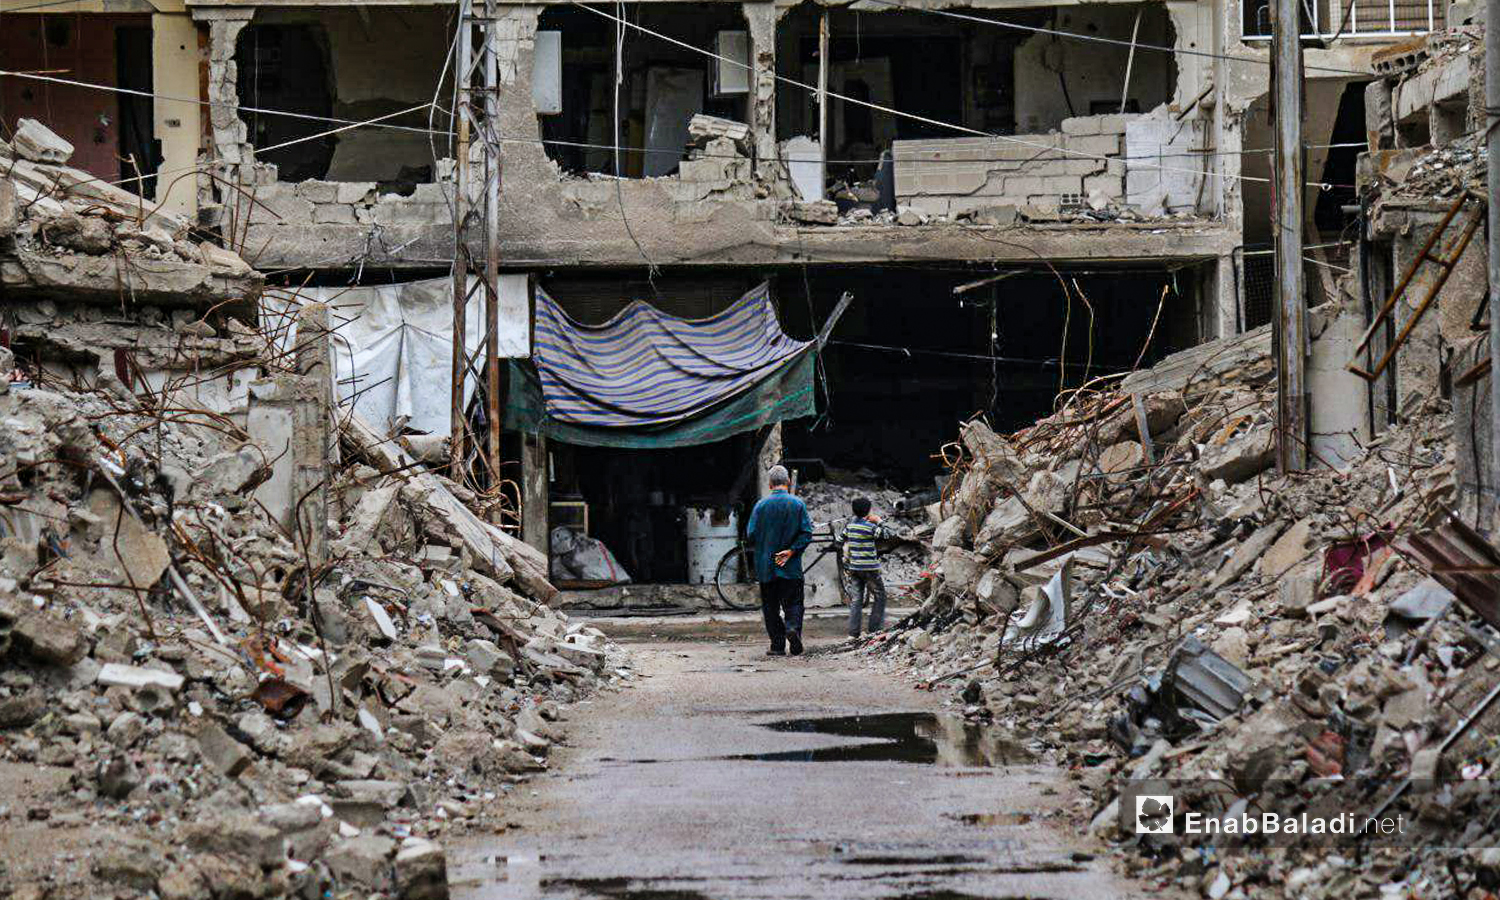 A destroyed street in Zamalka city - 29 December 2018 (Enab Baladi / Abdulmeen Homs)